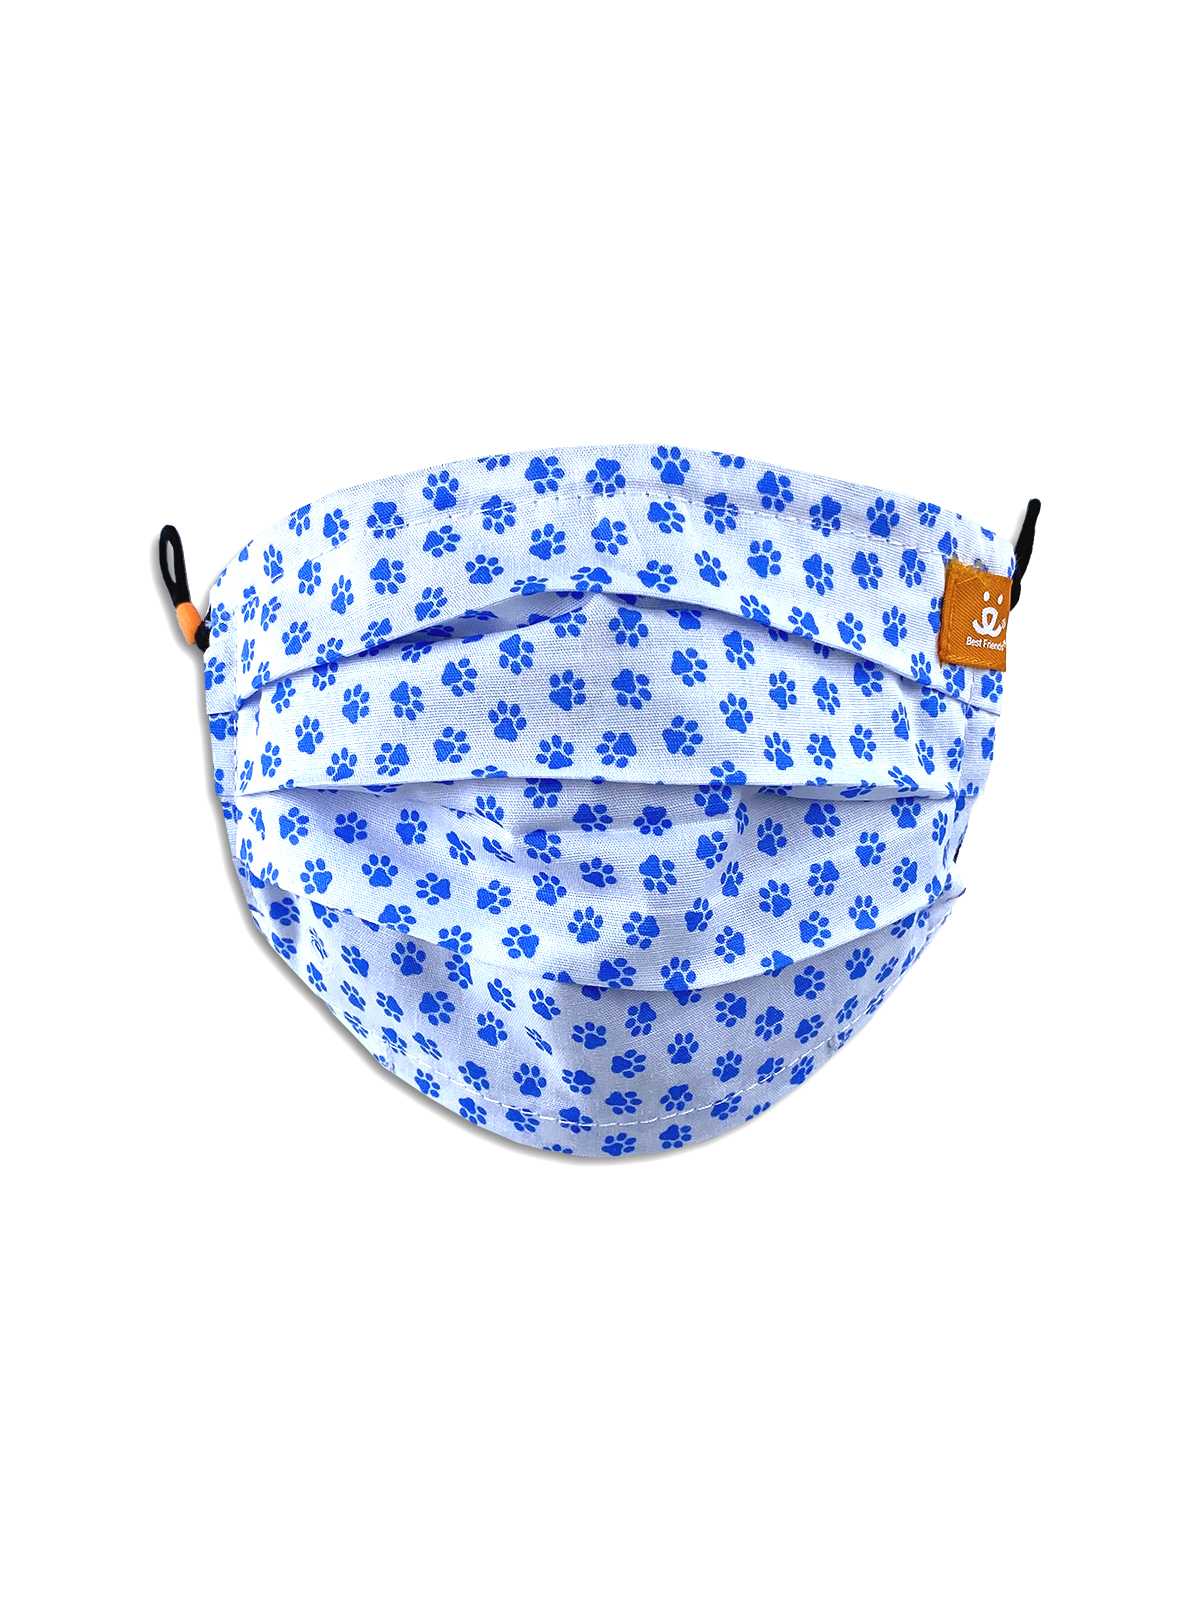 KIDS SCATTERED PAWS PLEATED REVERSIBLE MASK 3-PACK